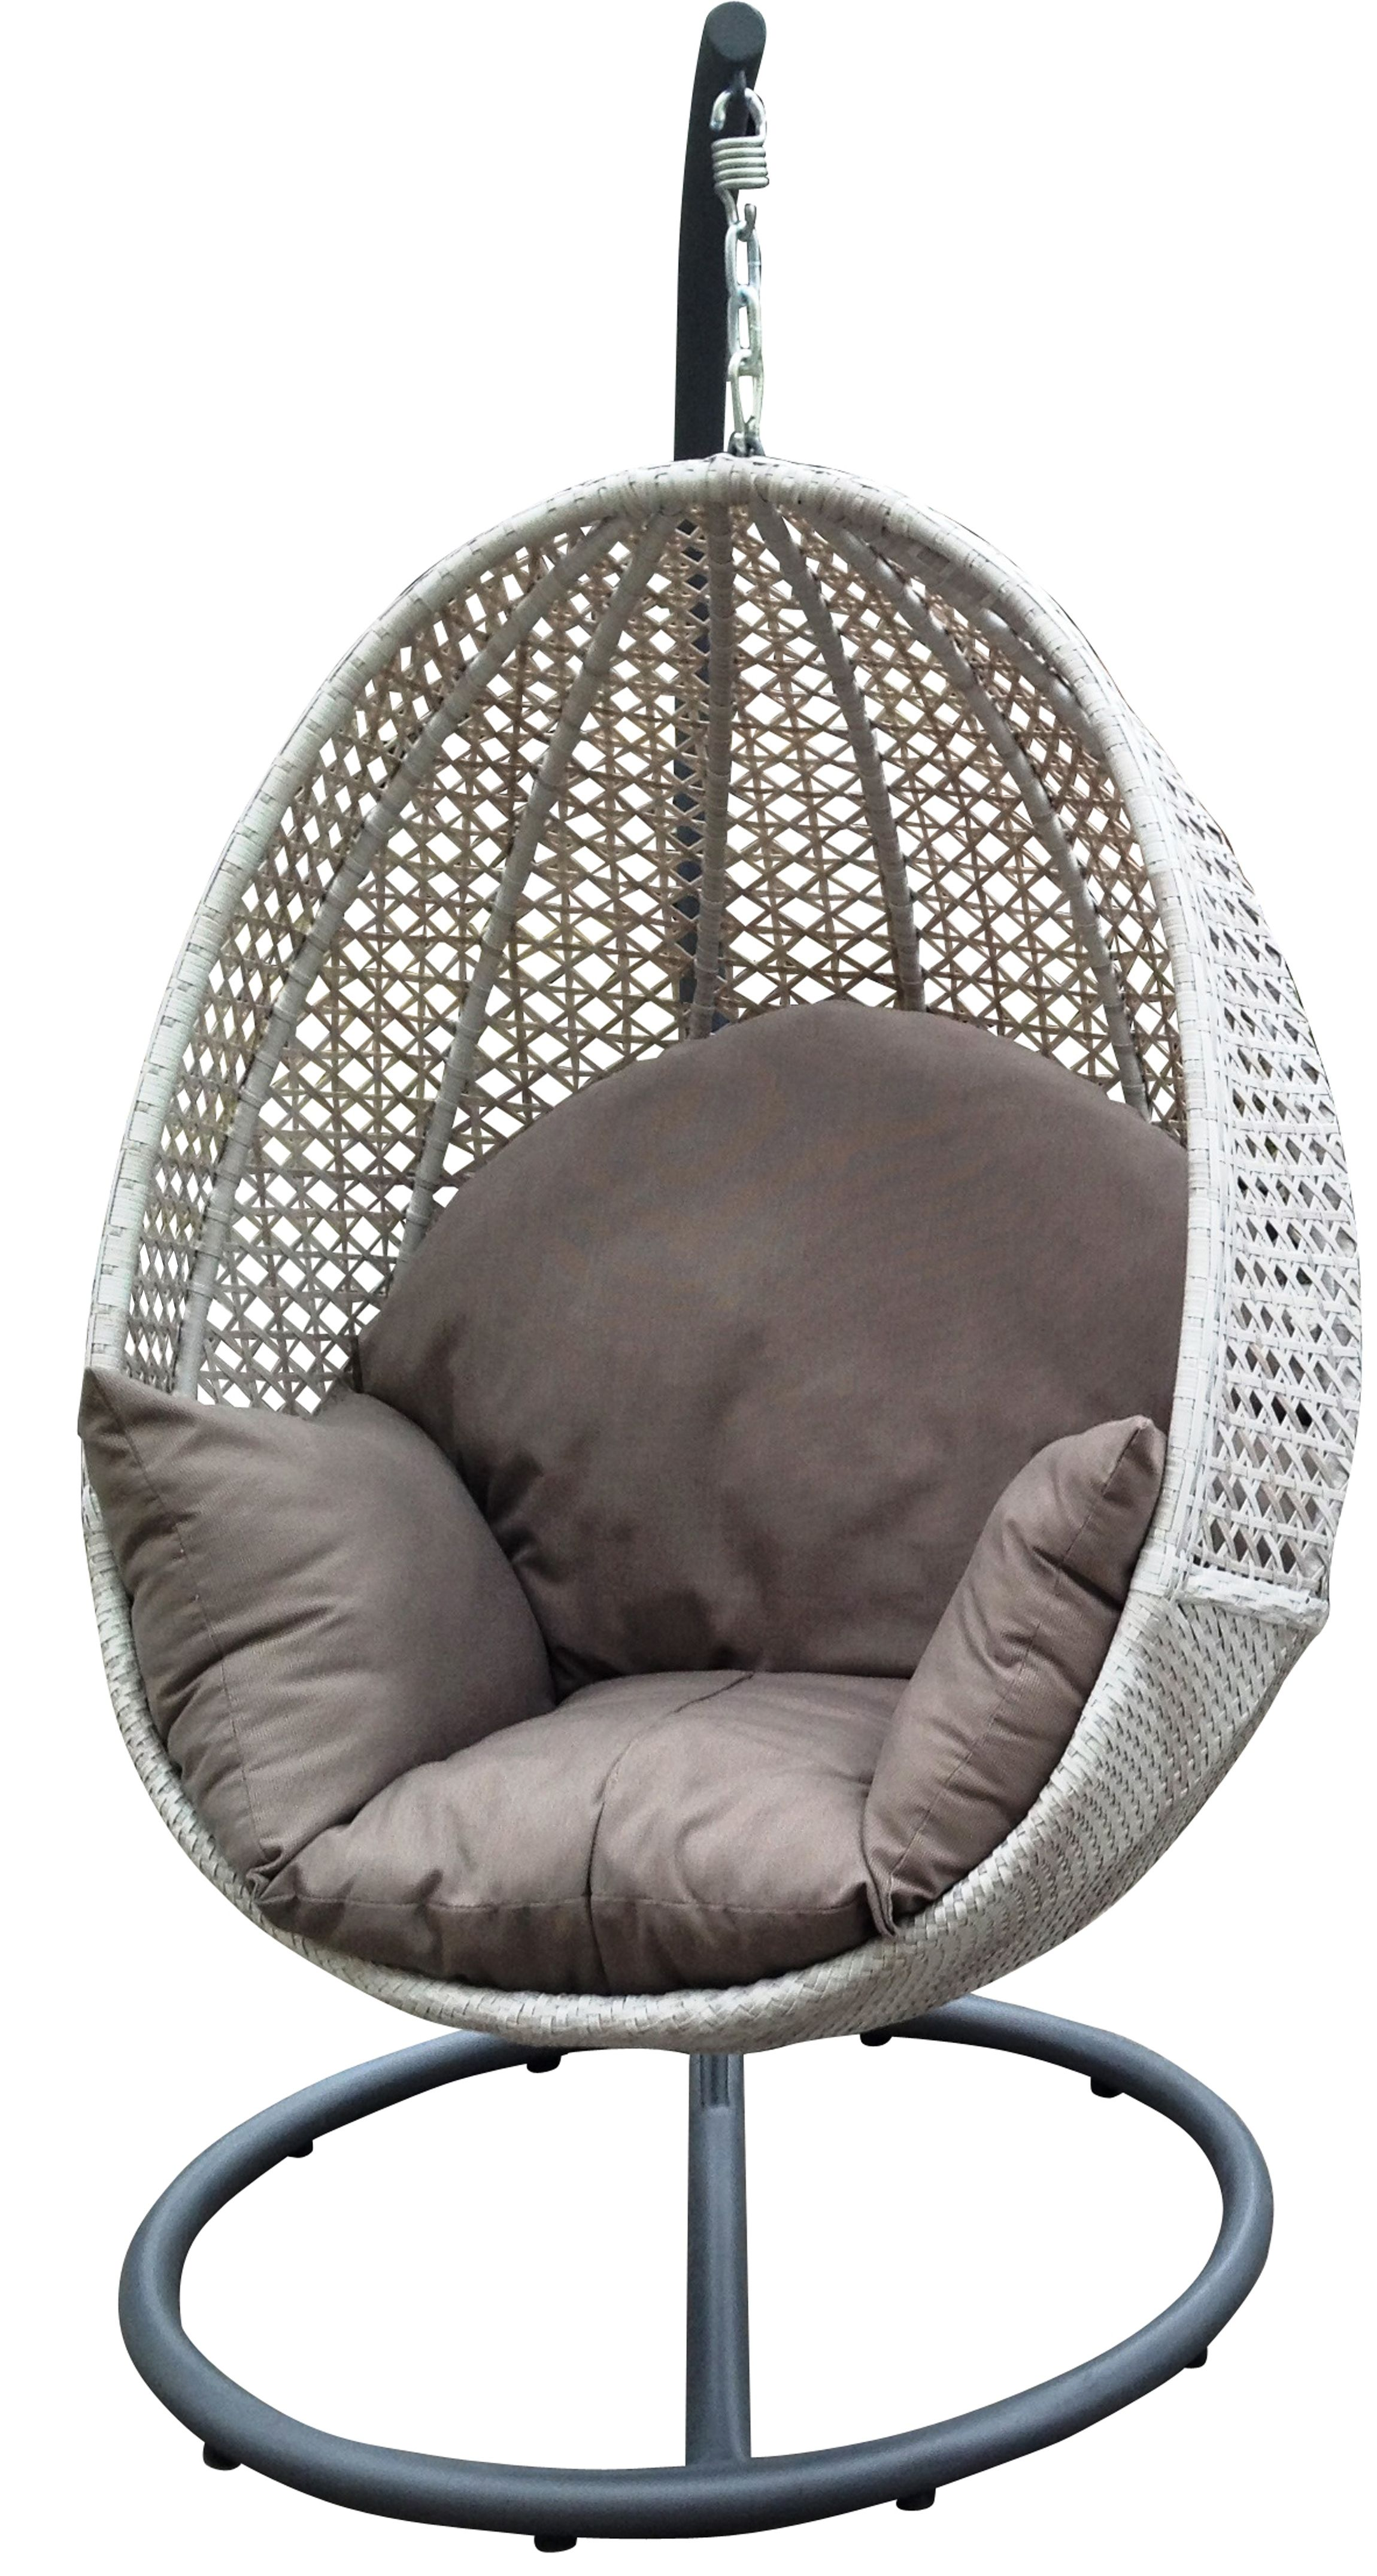 Outdoor hanging egg chair Available at Drovers Inside